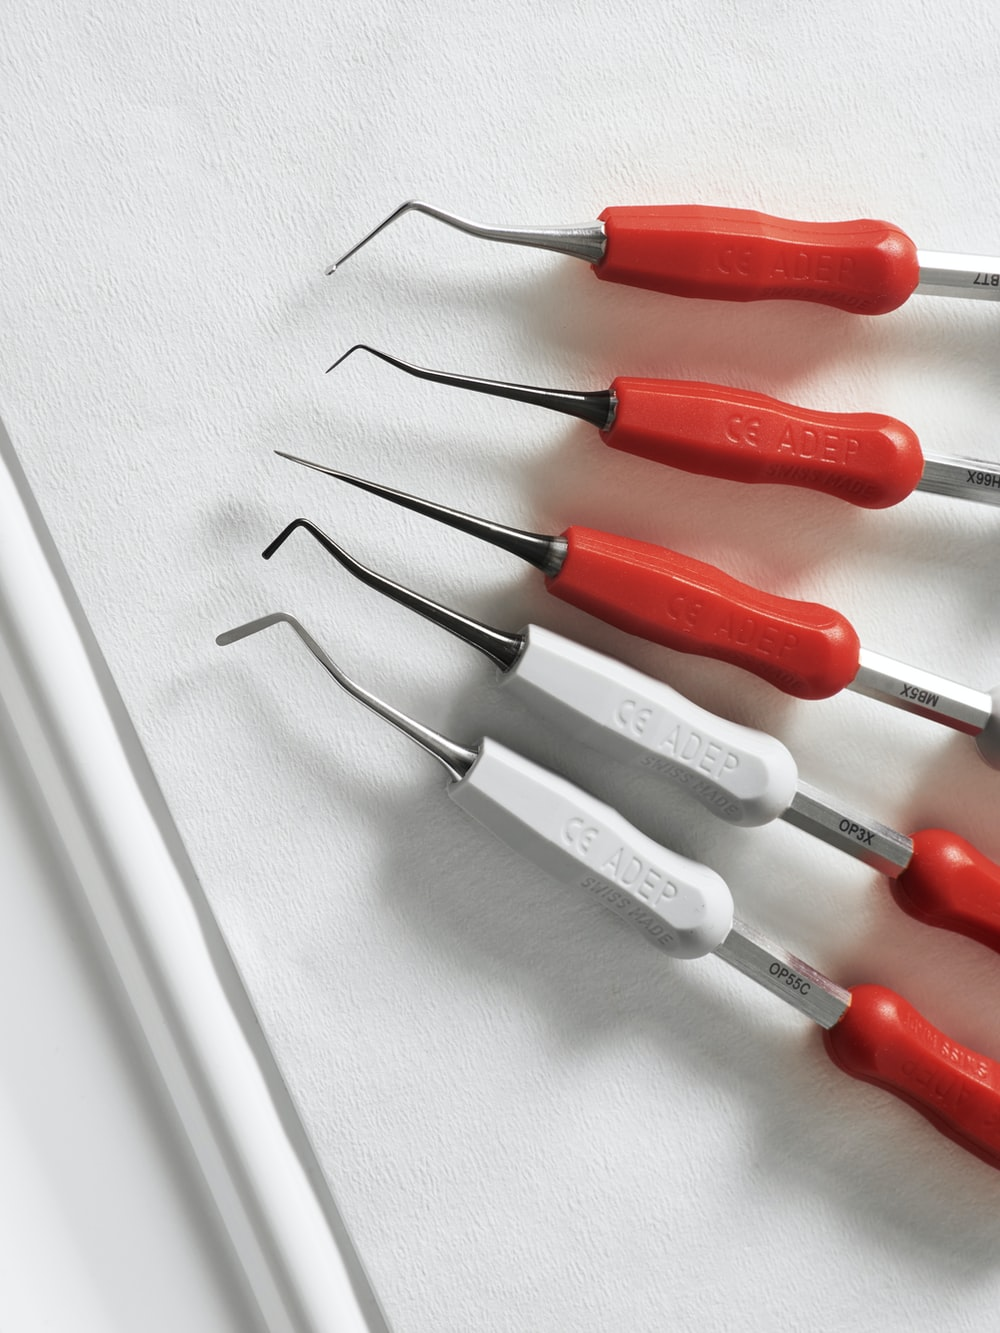 red and silver screw driver